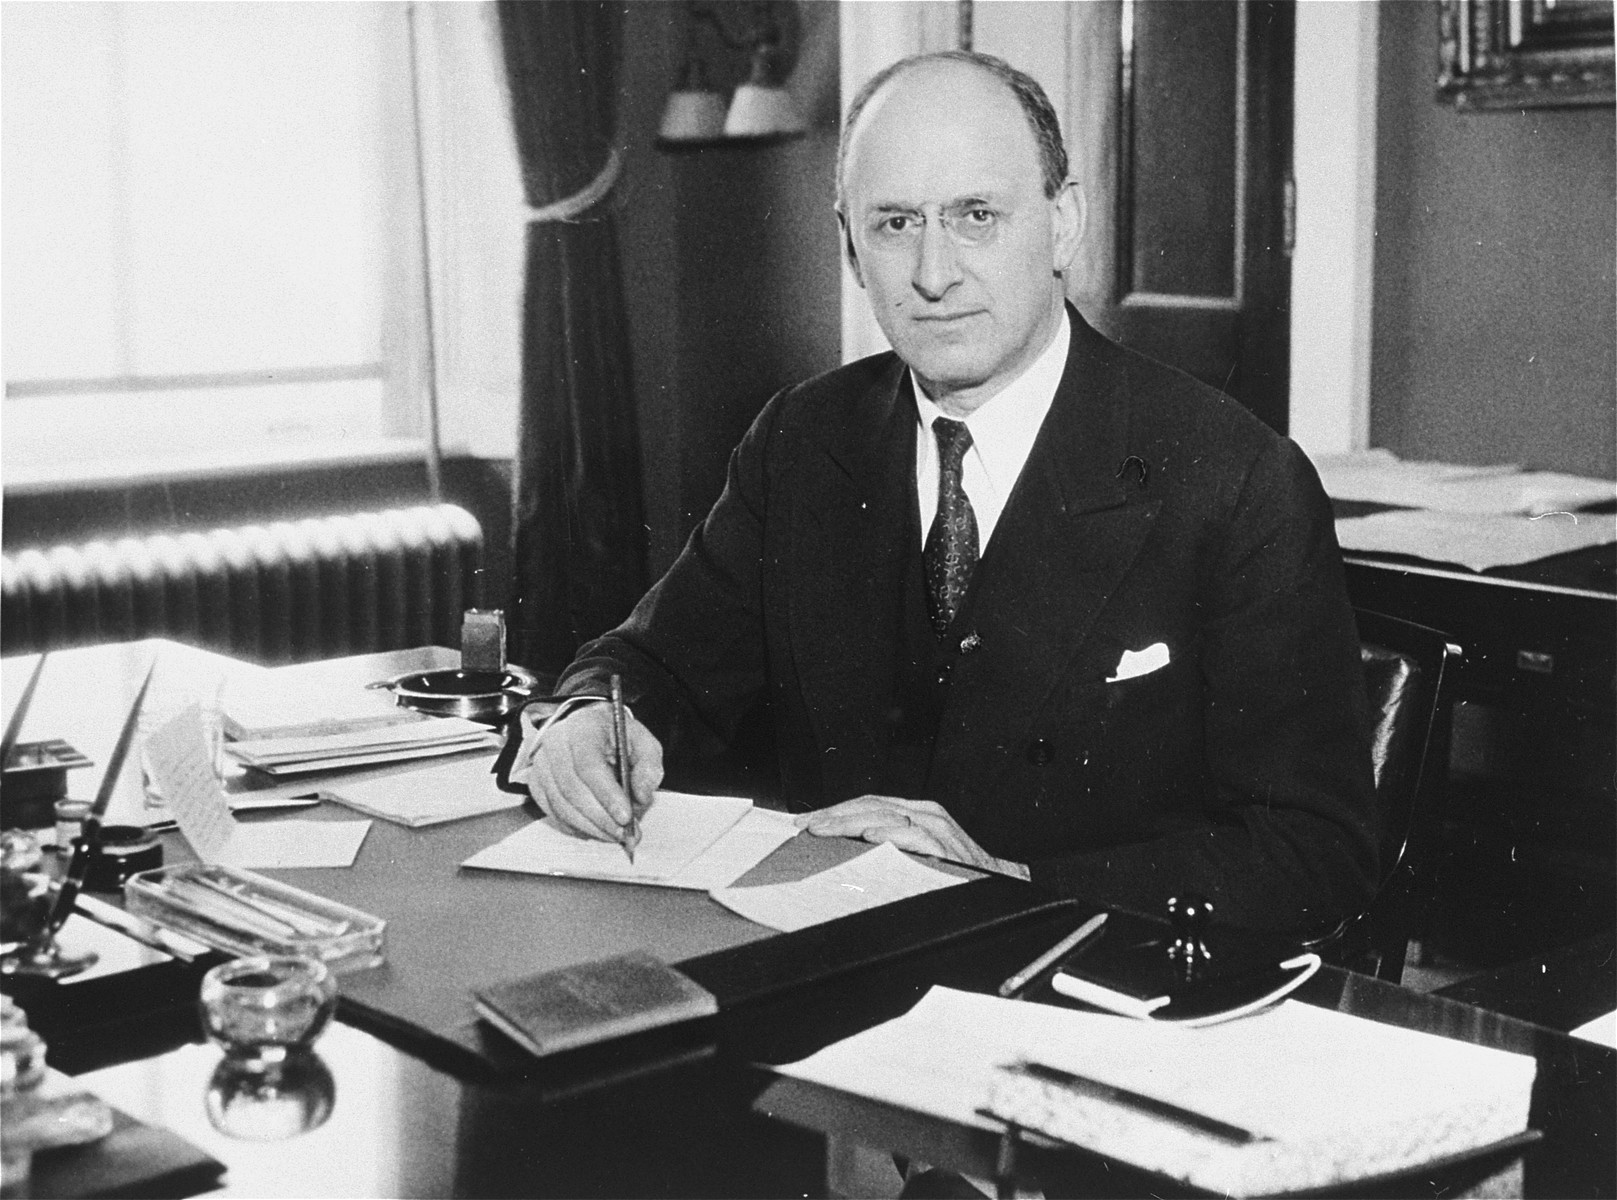 "Portrait of Henry Morgenthau Jr. at his desk in the U.S. Department of the Treasury.  Henry Morgenthau Jr. (1891-1967), served as Secretary of the Treasury under Franklin Roosevelt, and as such, was the highest ranking Jewish official in the administration.    In January 1944, after receiving a report prepared by his subordinates on ""the acquiescence of this government in the murder of the Jews,"" Morgenthau wrote a personal report to the President which led to the establishment of the War Refugee Board.   After the war he became Chairman of the United Jewish Appeal and served in that capacity until 1950."